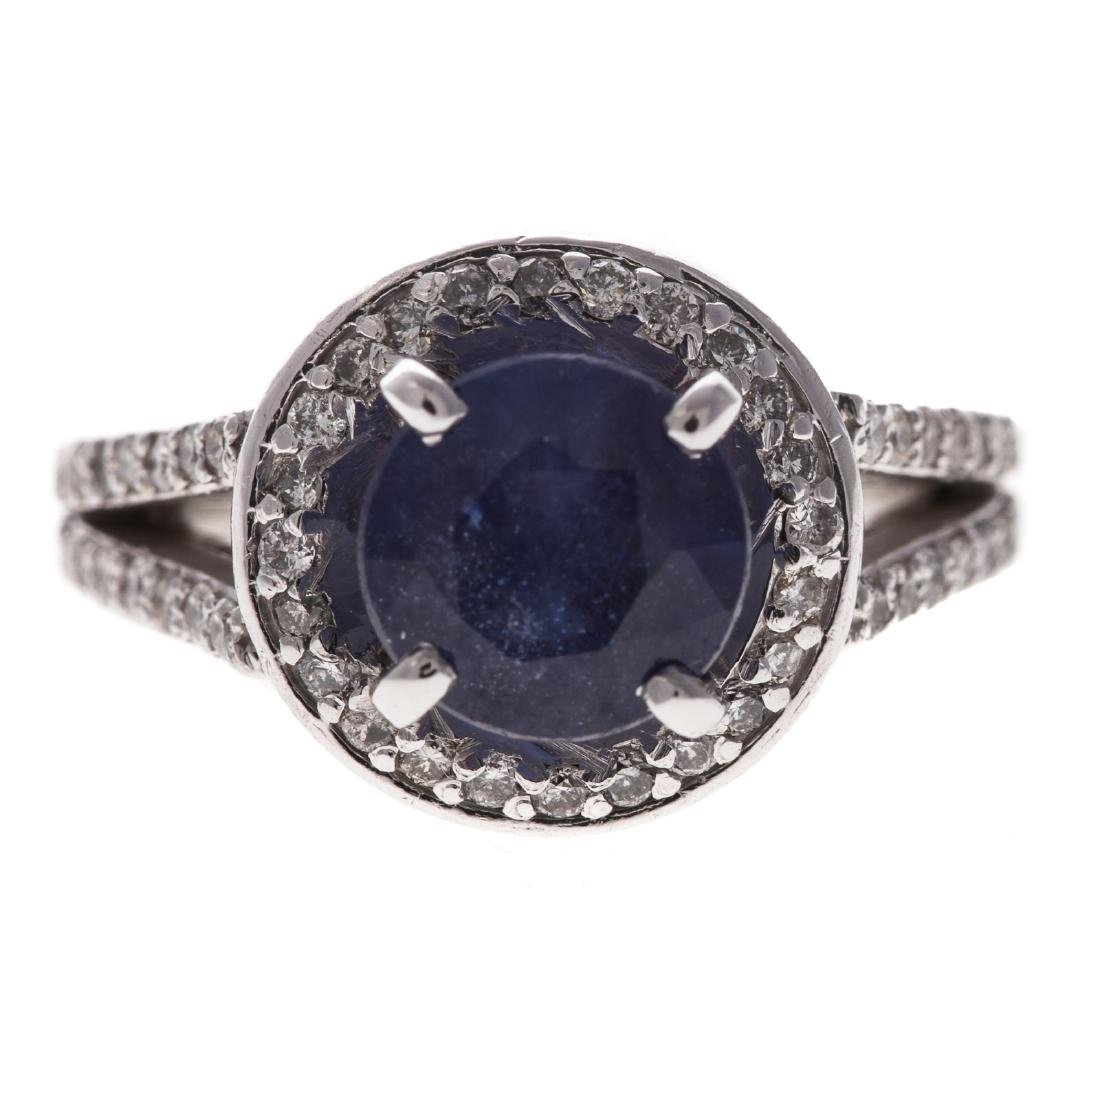 A Lady's Platinum and Diamond Ring